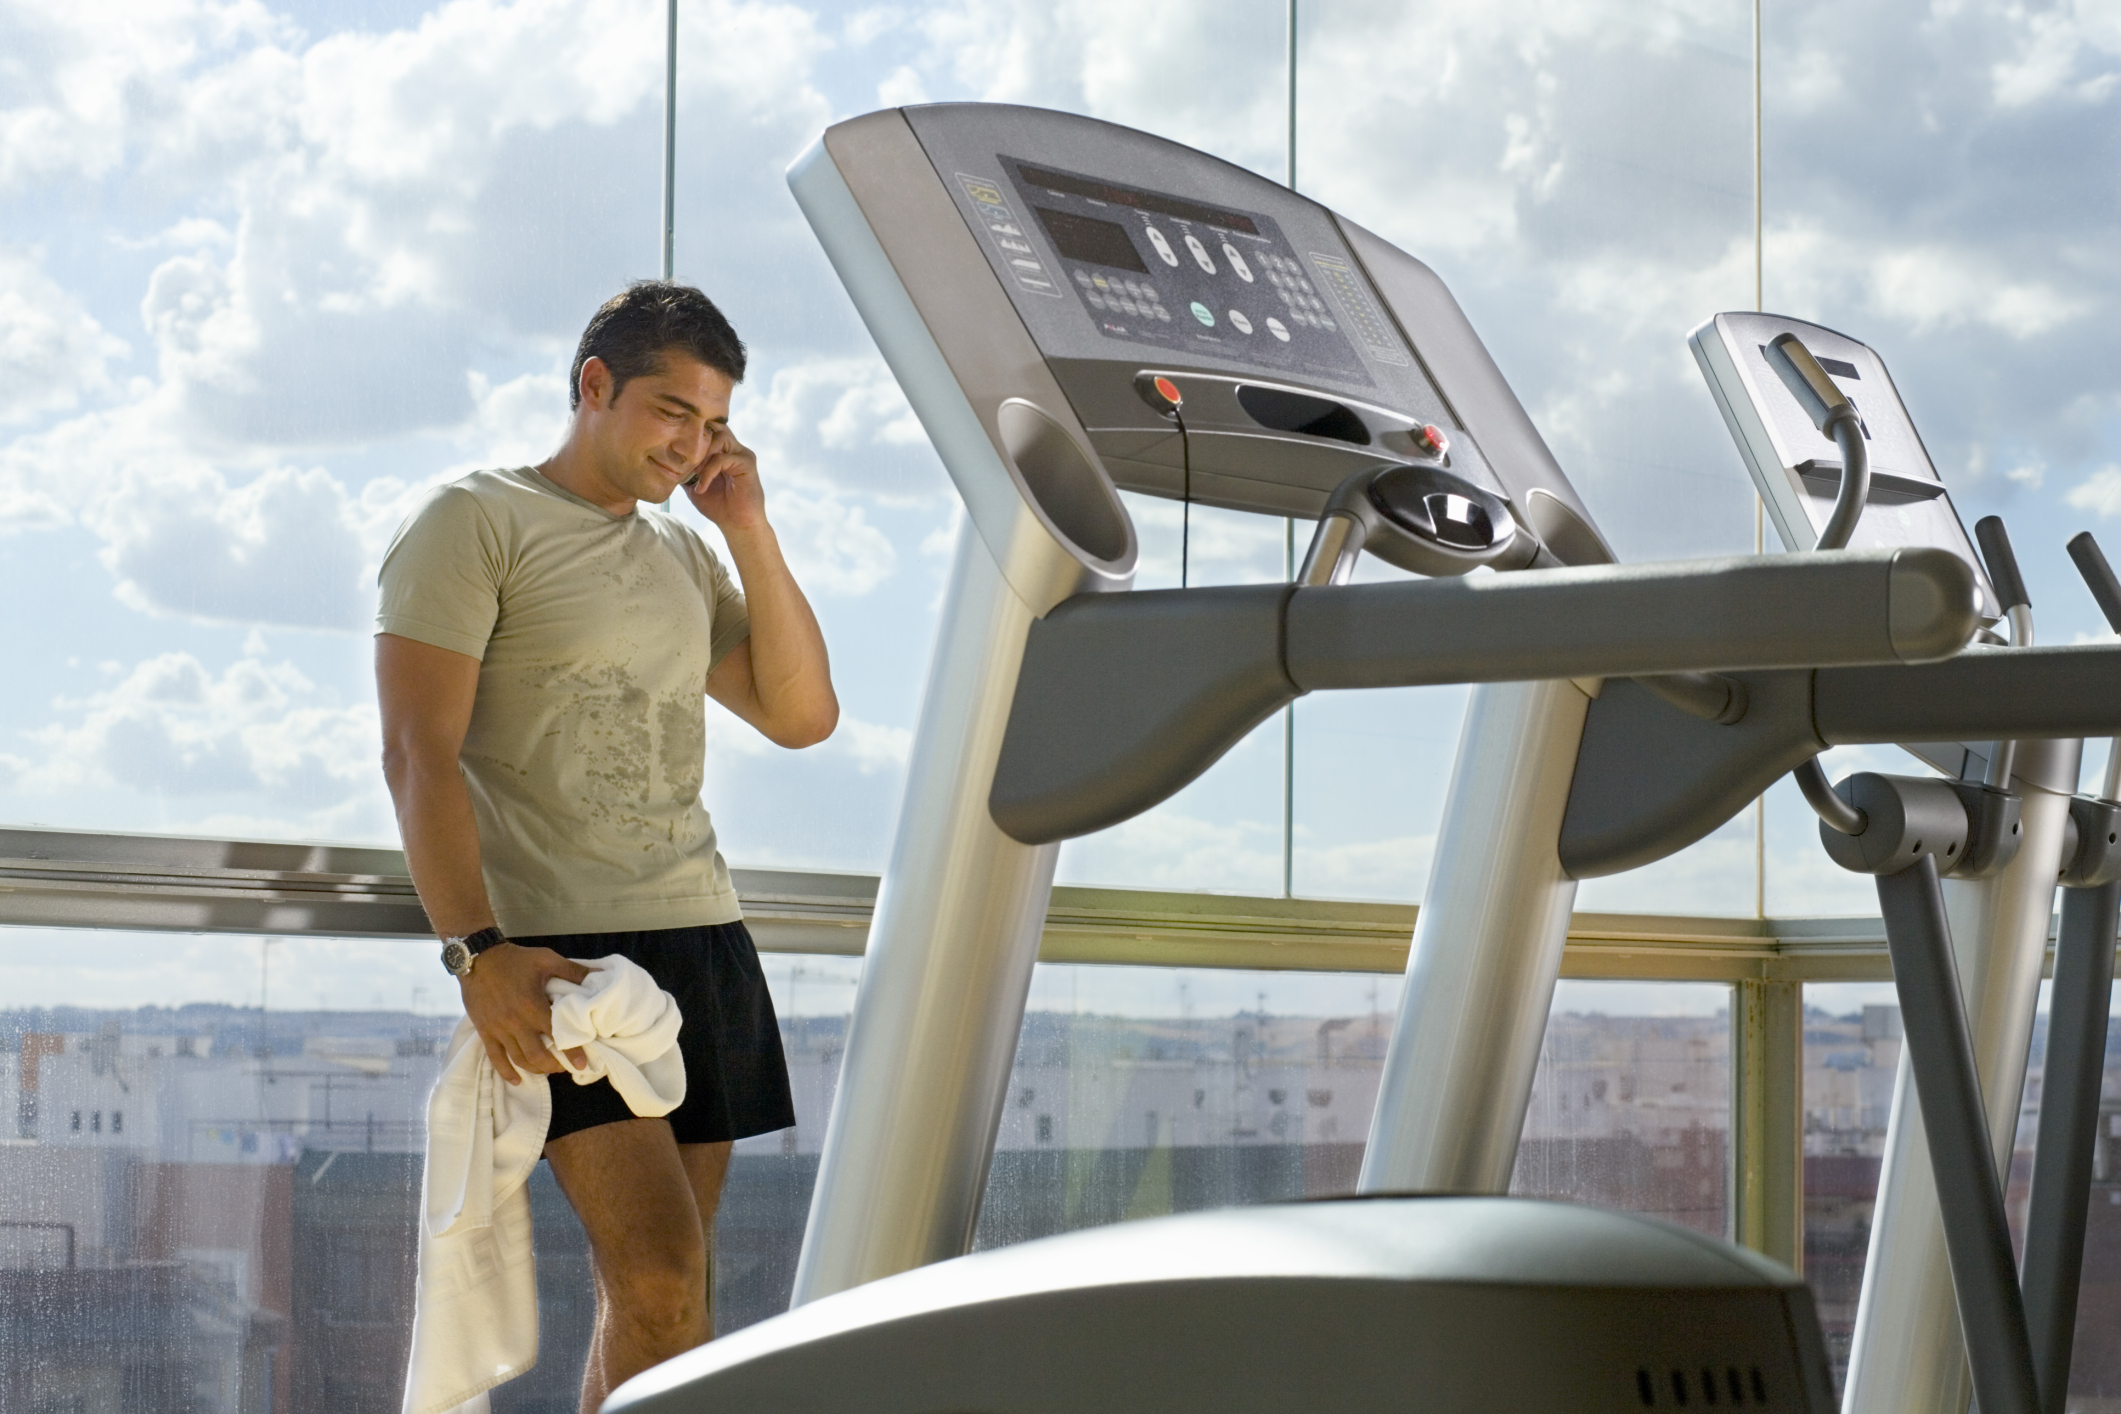 Can a Treadmill Be Used Upstairs? | Chron.com